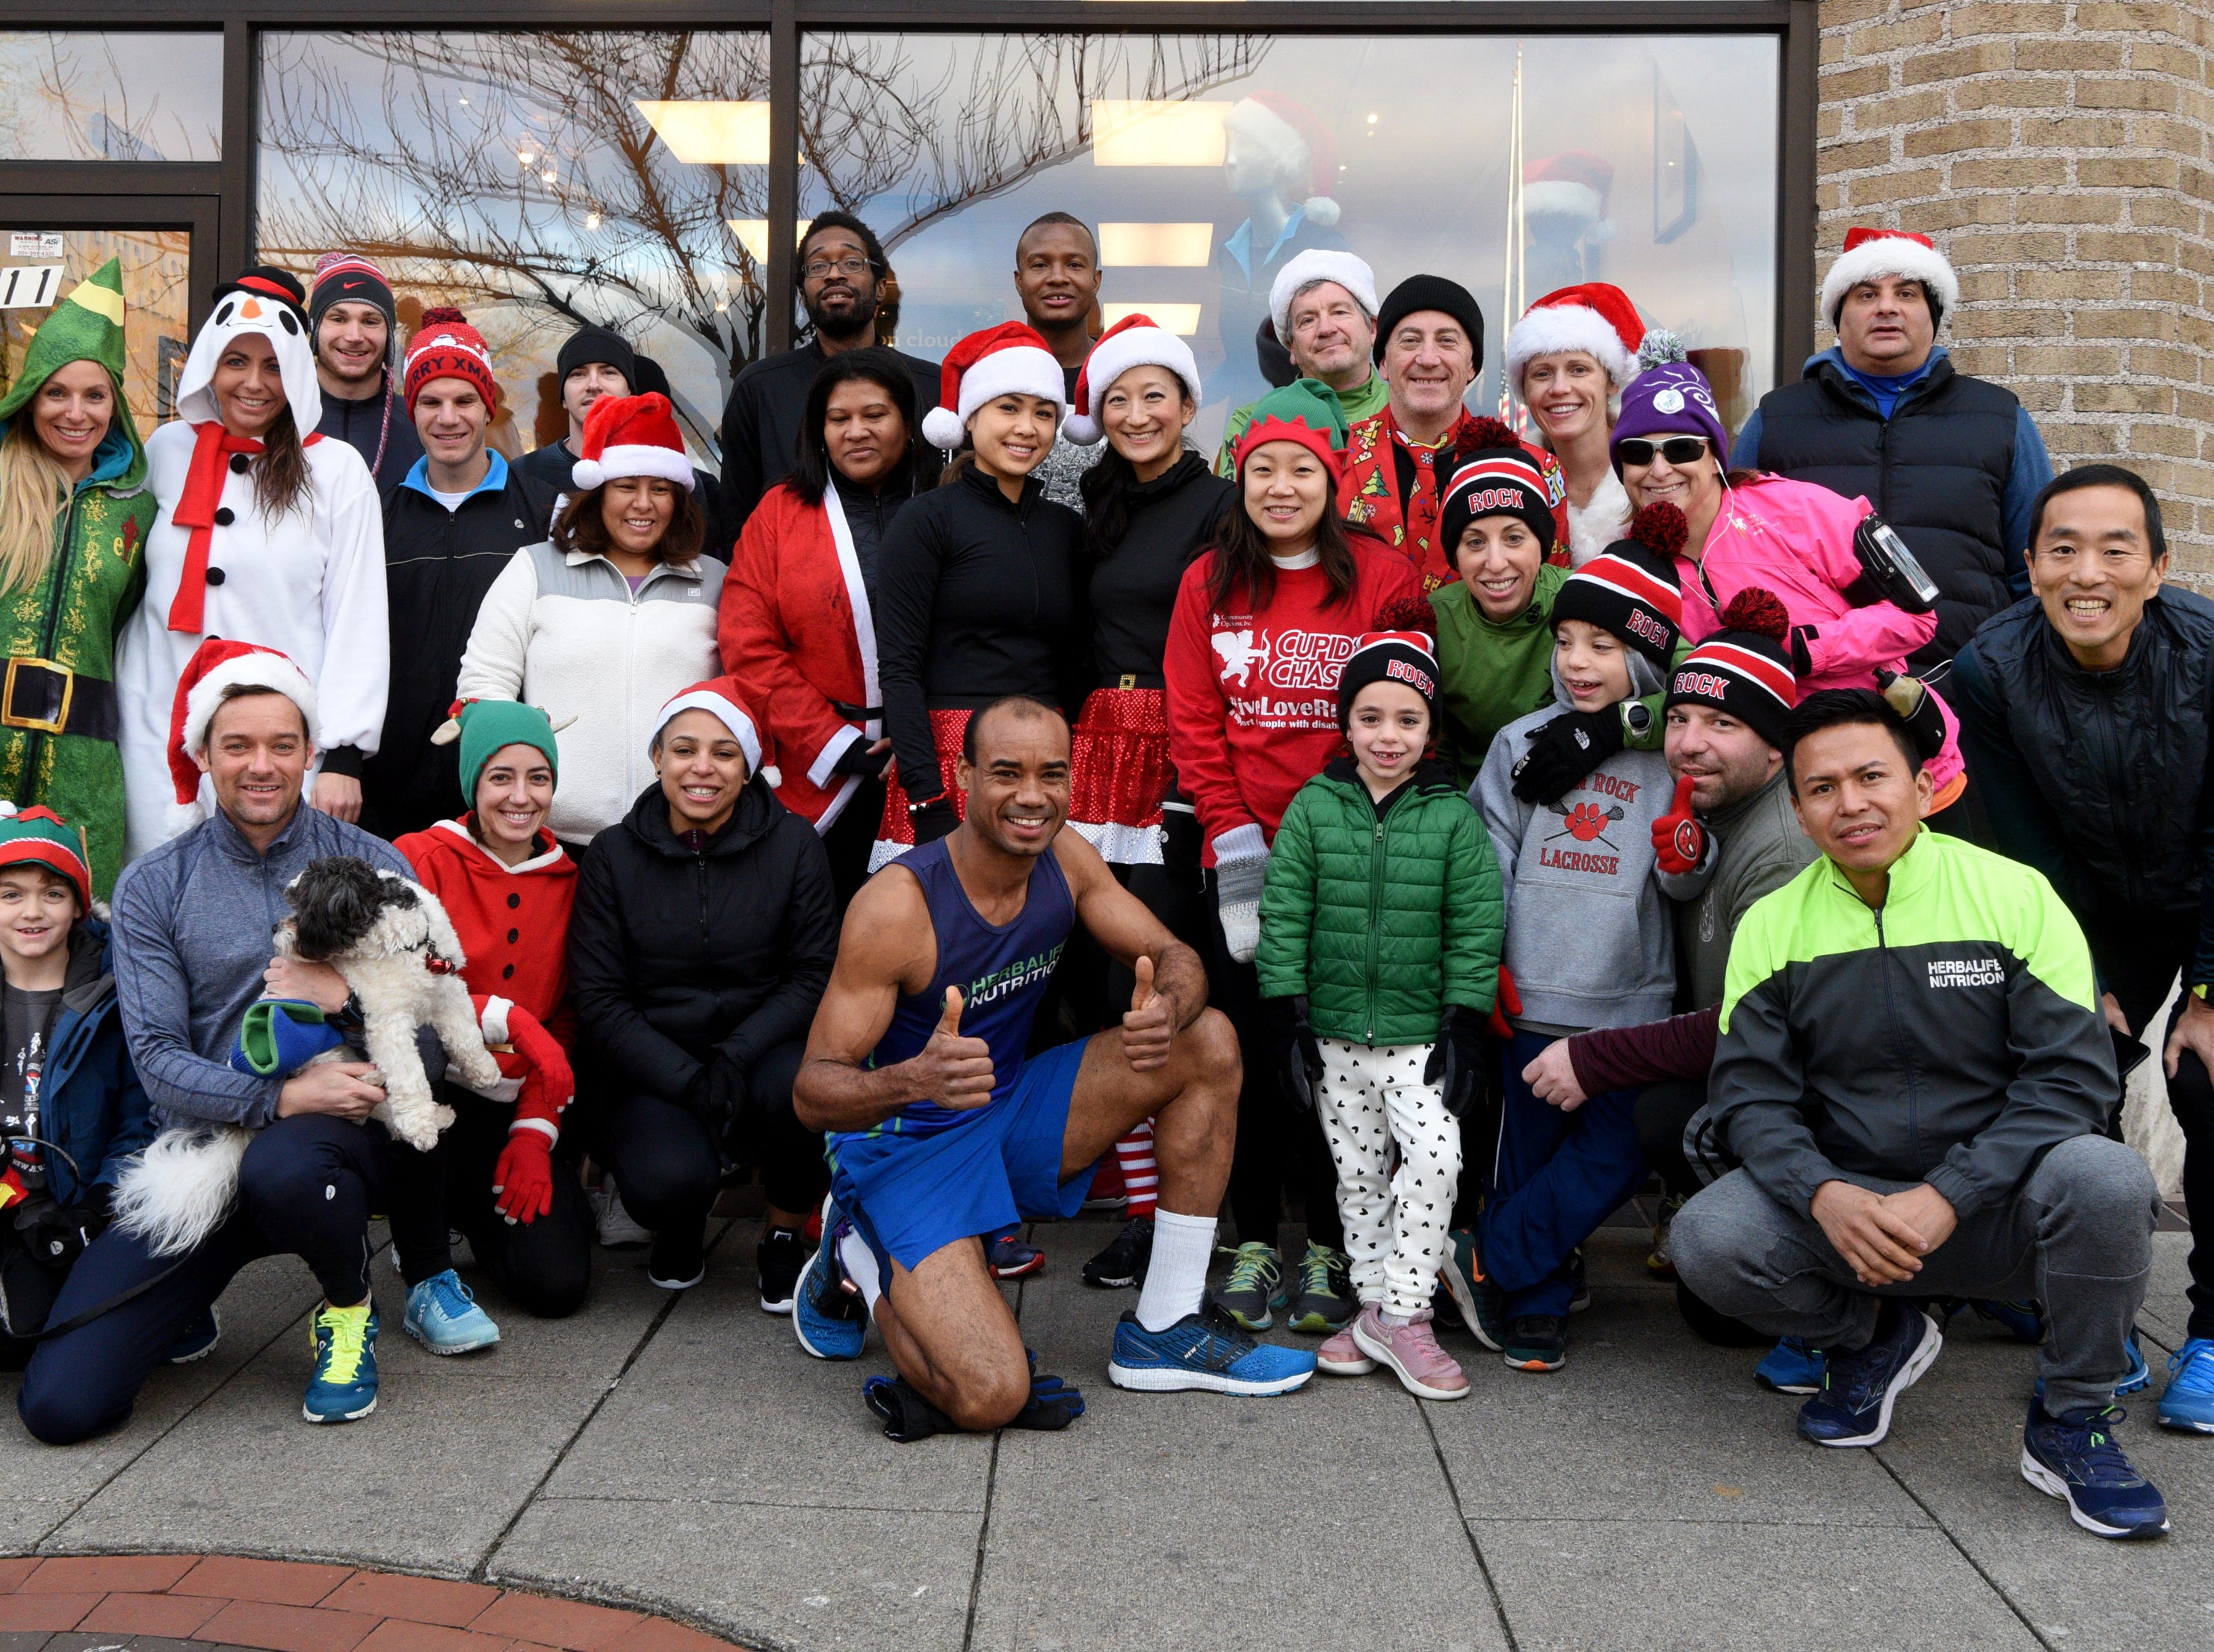 Racefaster Ridgewood organized a fun Santa Run on Sunday, December 23, 2018. The run left from the store on N. Broad St. and offered runs for varying levels and distances. Participants pose for a picture prior to leaving on the run.